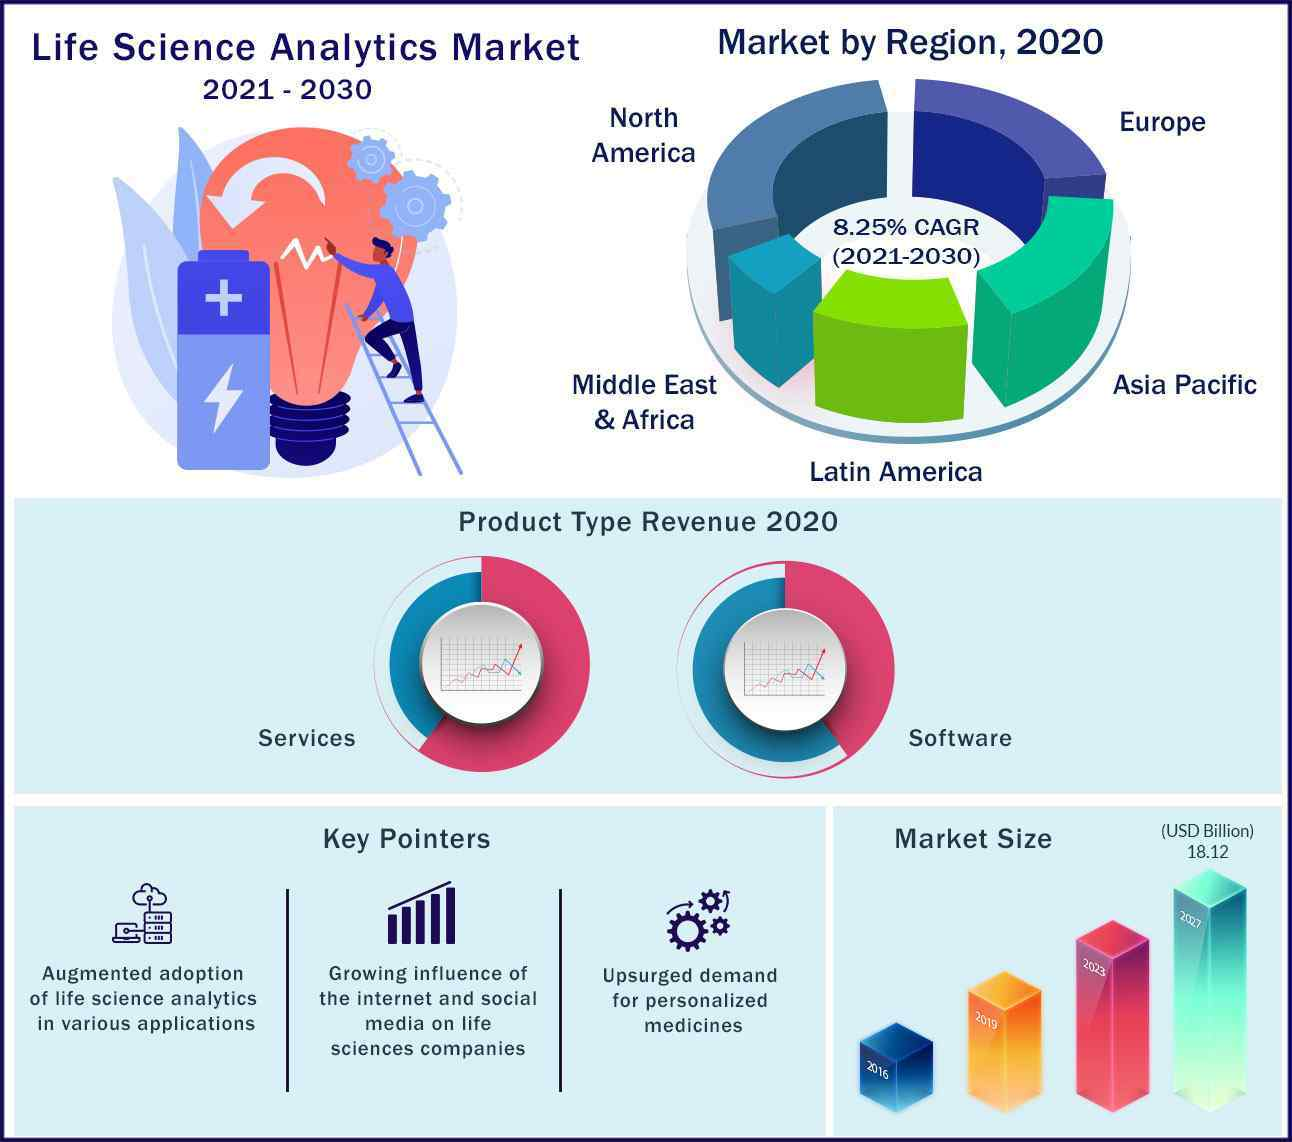 Global Life Science Analytics Market 2021 to 2030